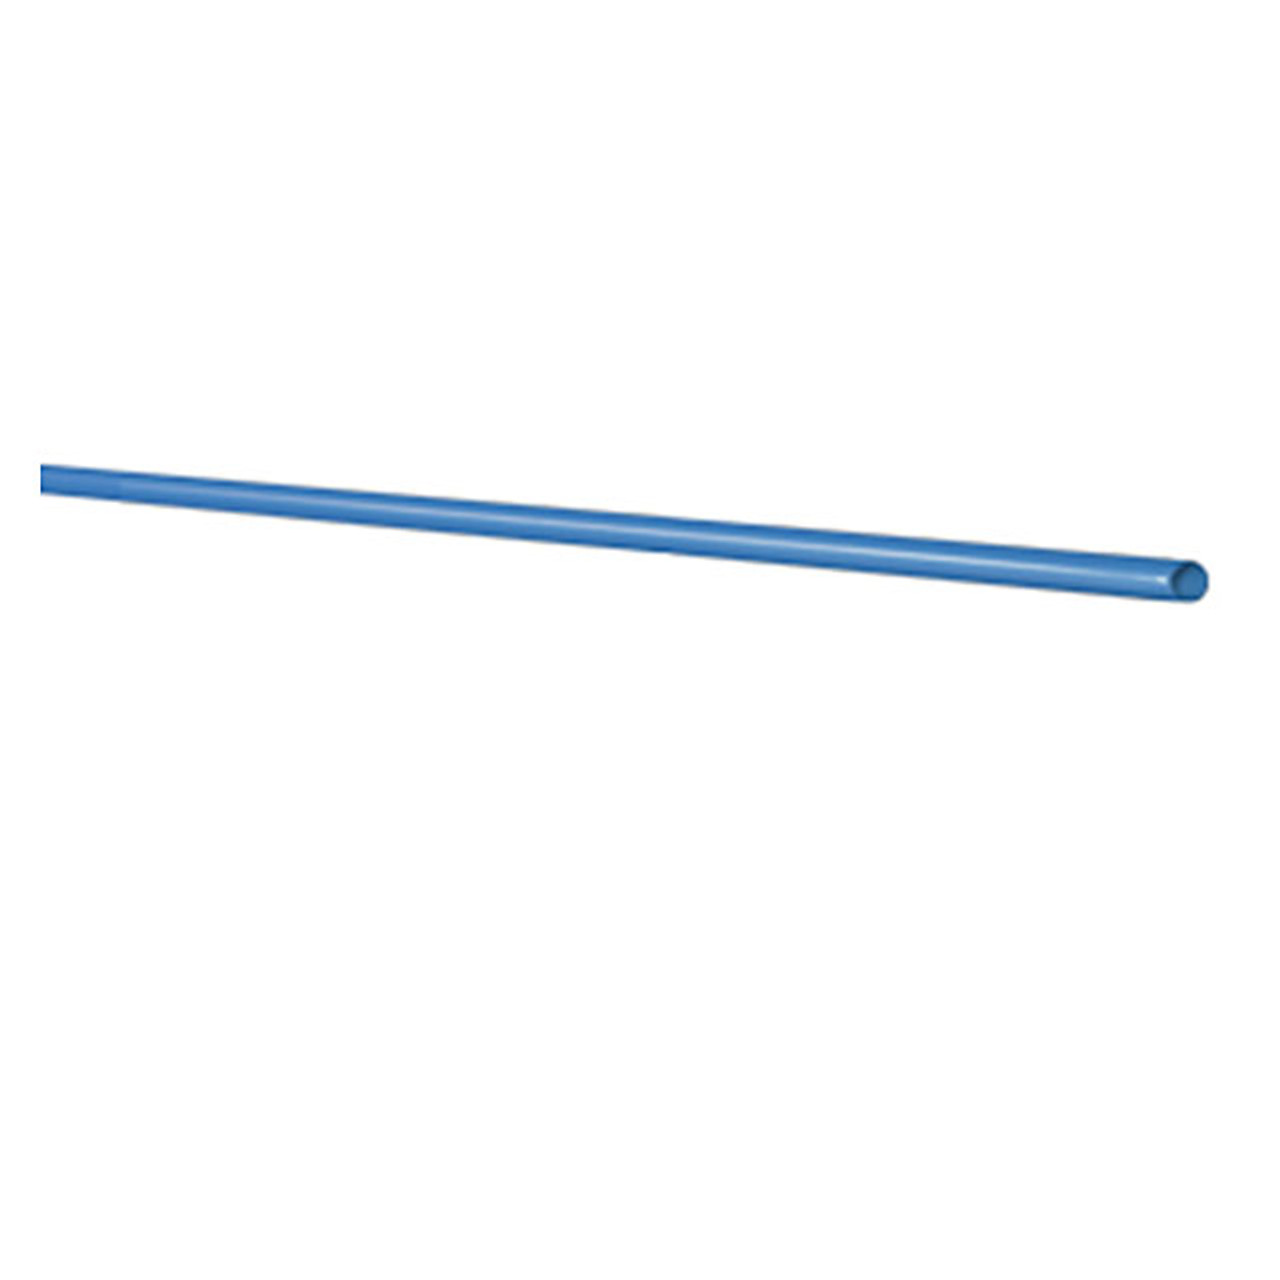 "HEAT SHRINK 3/16"" BLUE 4'  ADHESIVE LINED DUAL WALL"